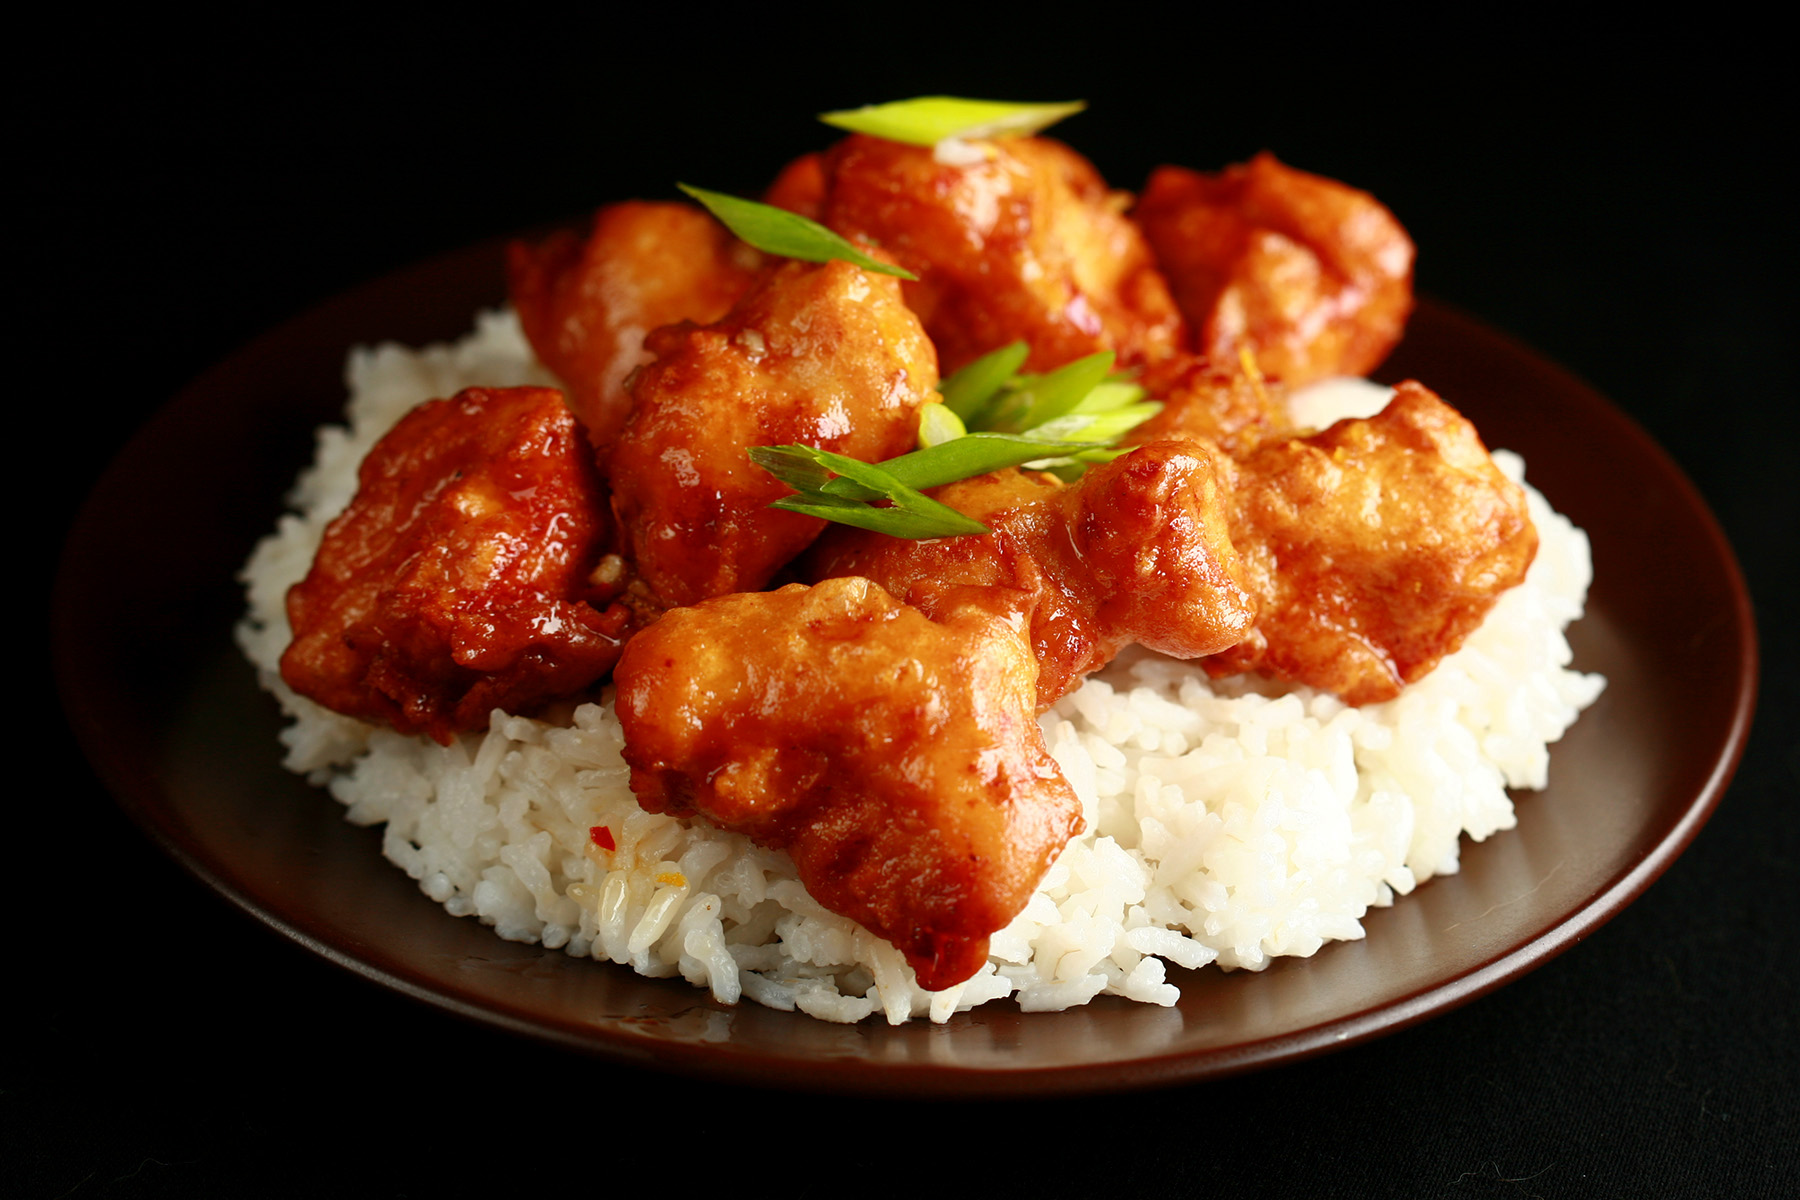 A plate of rice, covered with gluten-free spicy orange chicken: Chunks of battered and deep fried chicken coated in a glossy orange sauce, garnished with sliced green onions.